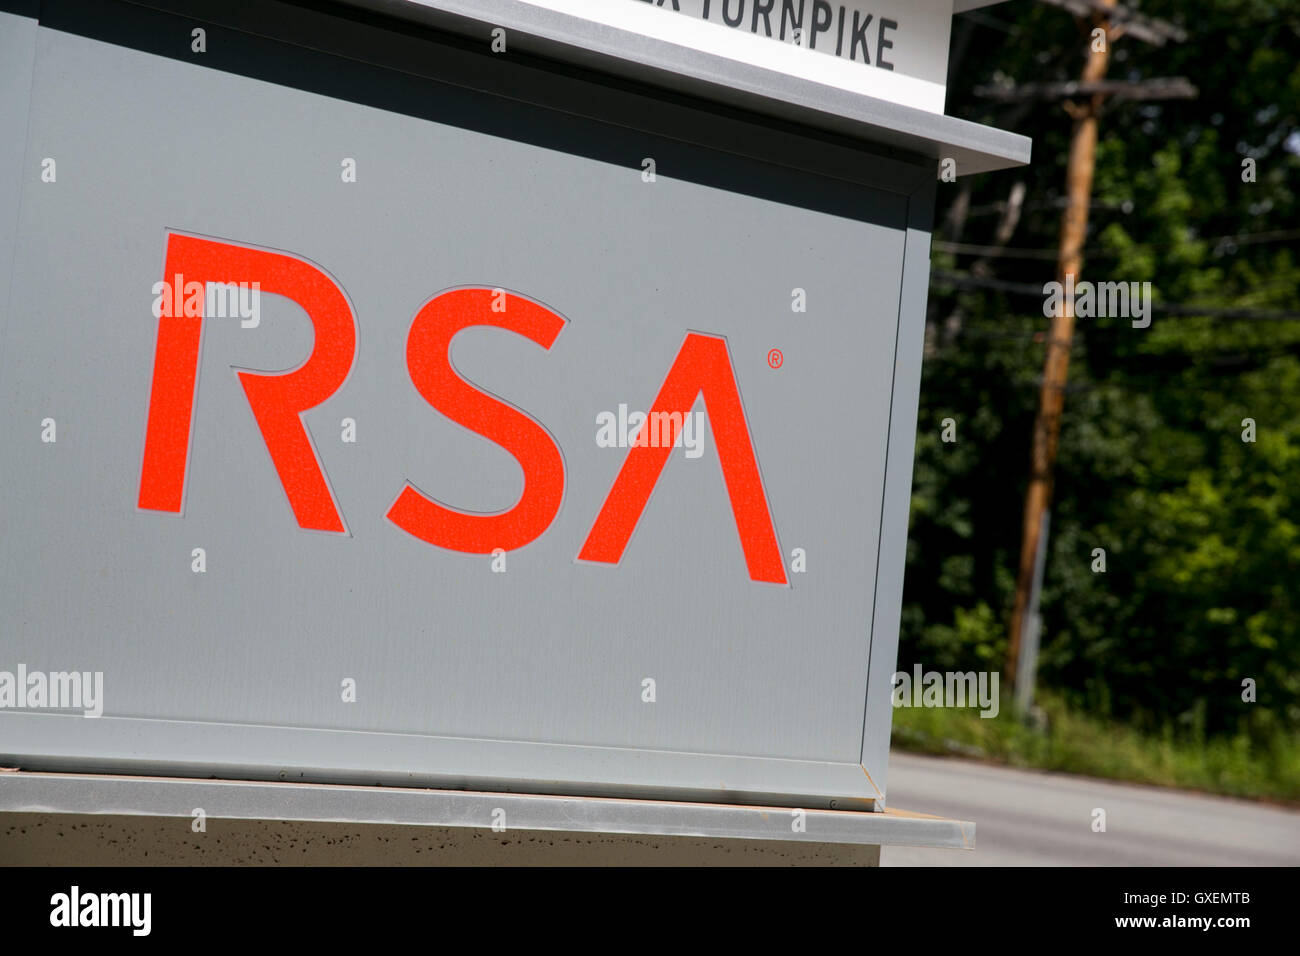 A logo sign outside of a facility occupied by RSA Security LLC, in Bedford, Massachusetts on August 14, 2016. - Stock Image